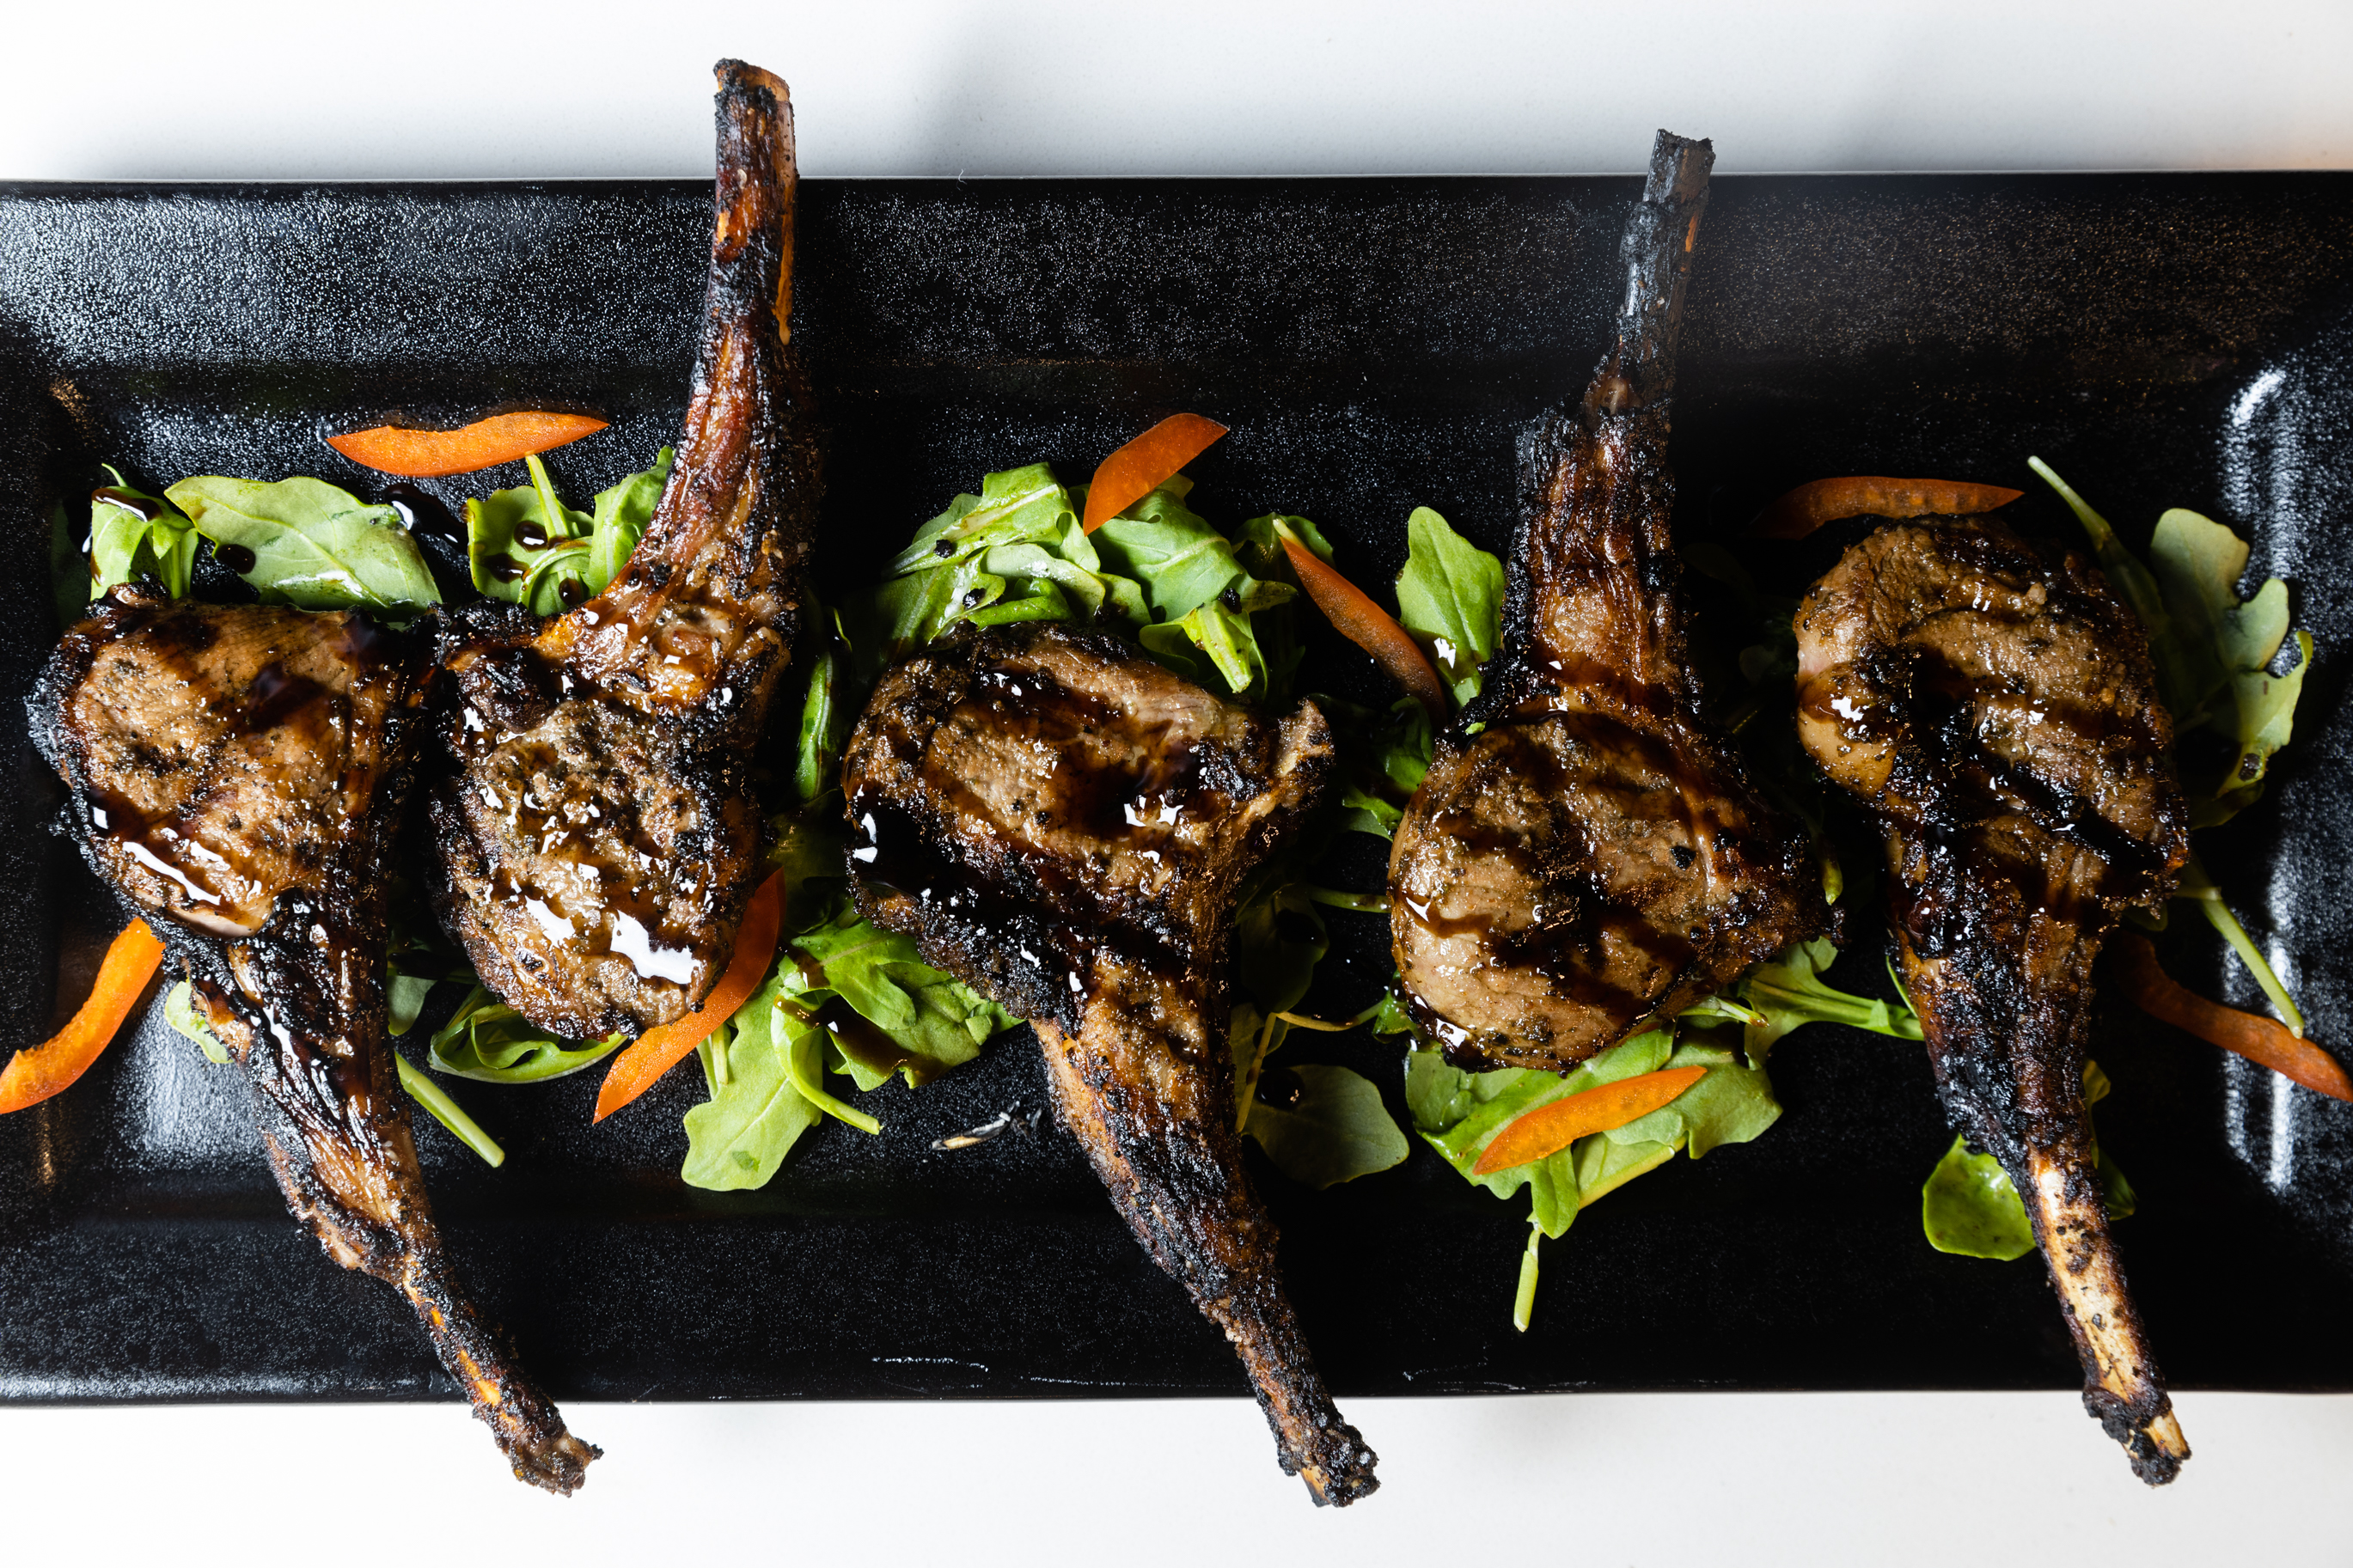 The lamb chops at Fame in River North